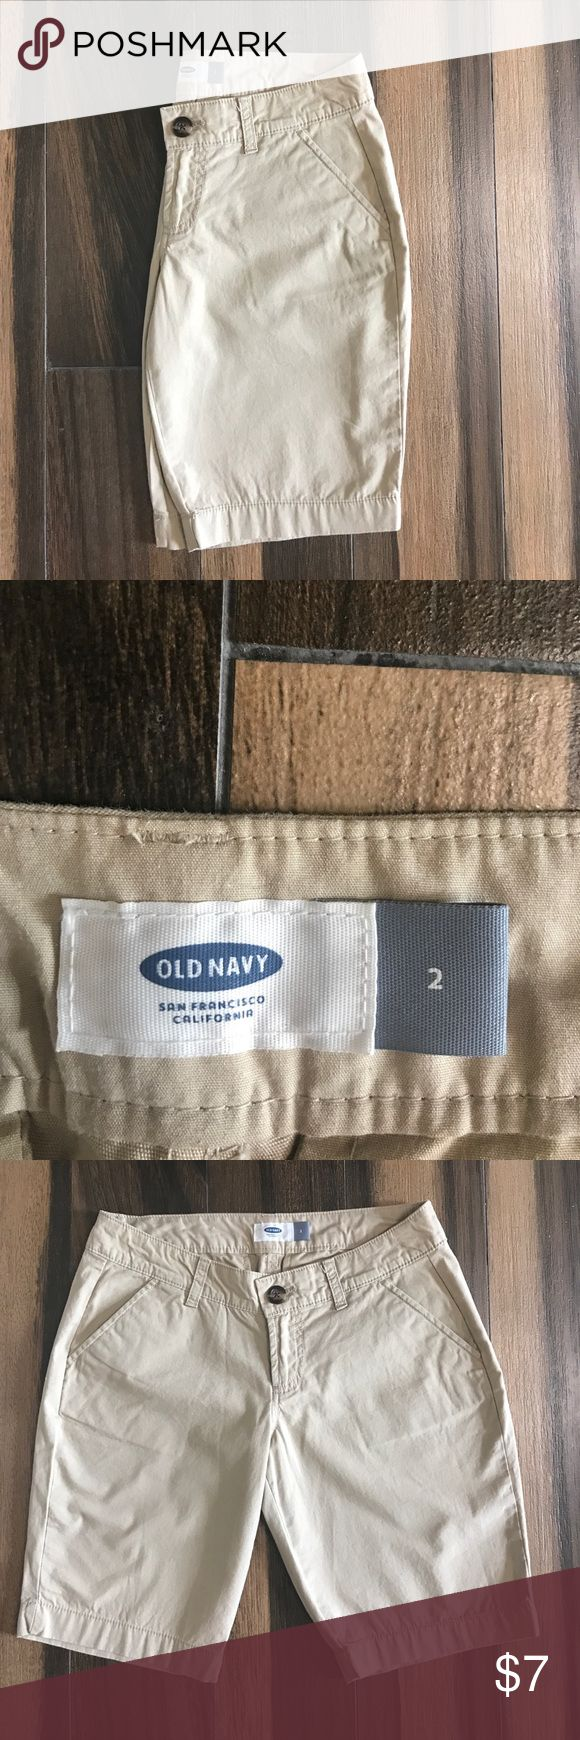 Old Navy uniform shorts. Perfect like new. Sz 2 Old Navy uniform khaki shorts. Like new condition. Size 2. No thread out of place! Old Navy Shorts